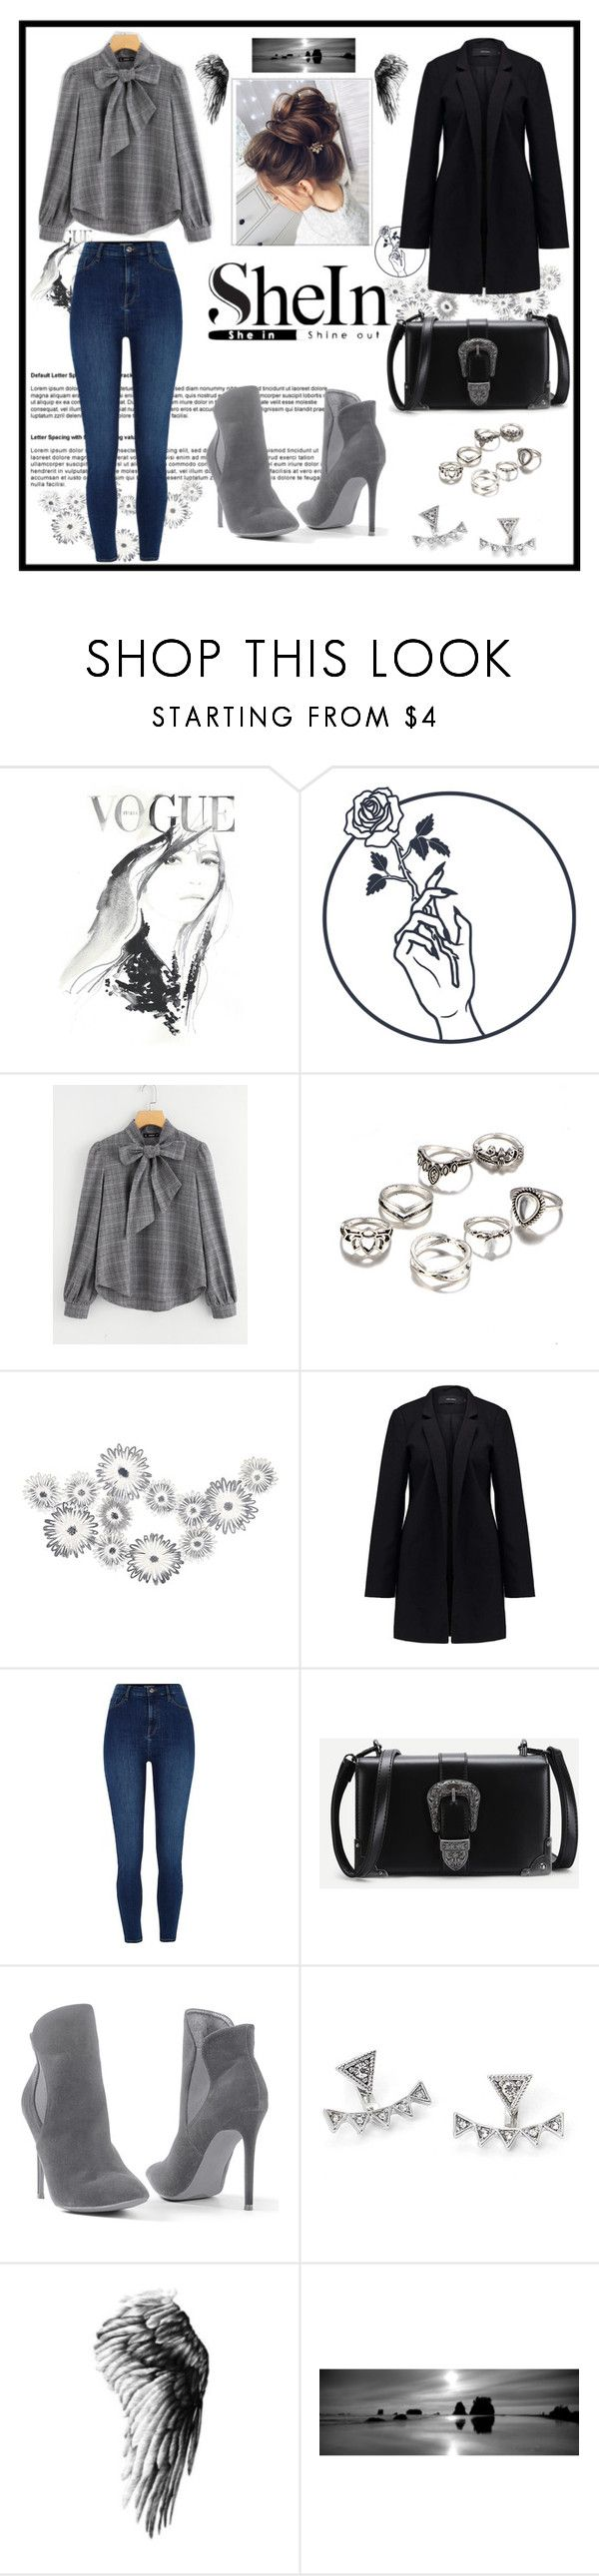 """Shein.."" by vellfe ❤ liked on Polyvore featuring Vero Moda, River Island and Venus"